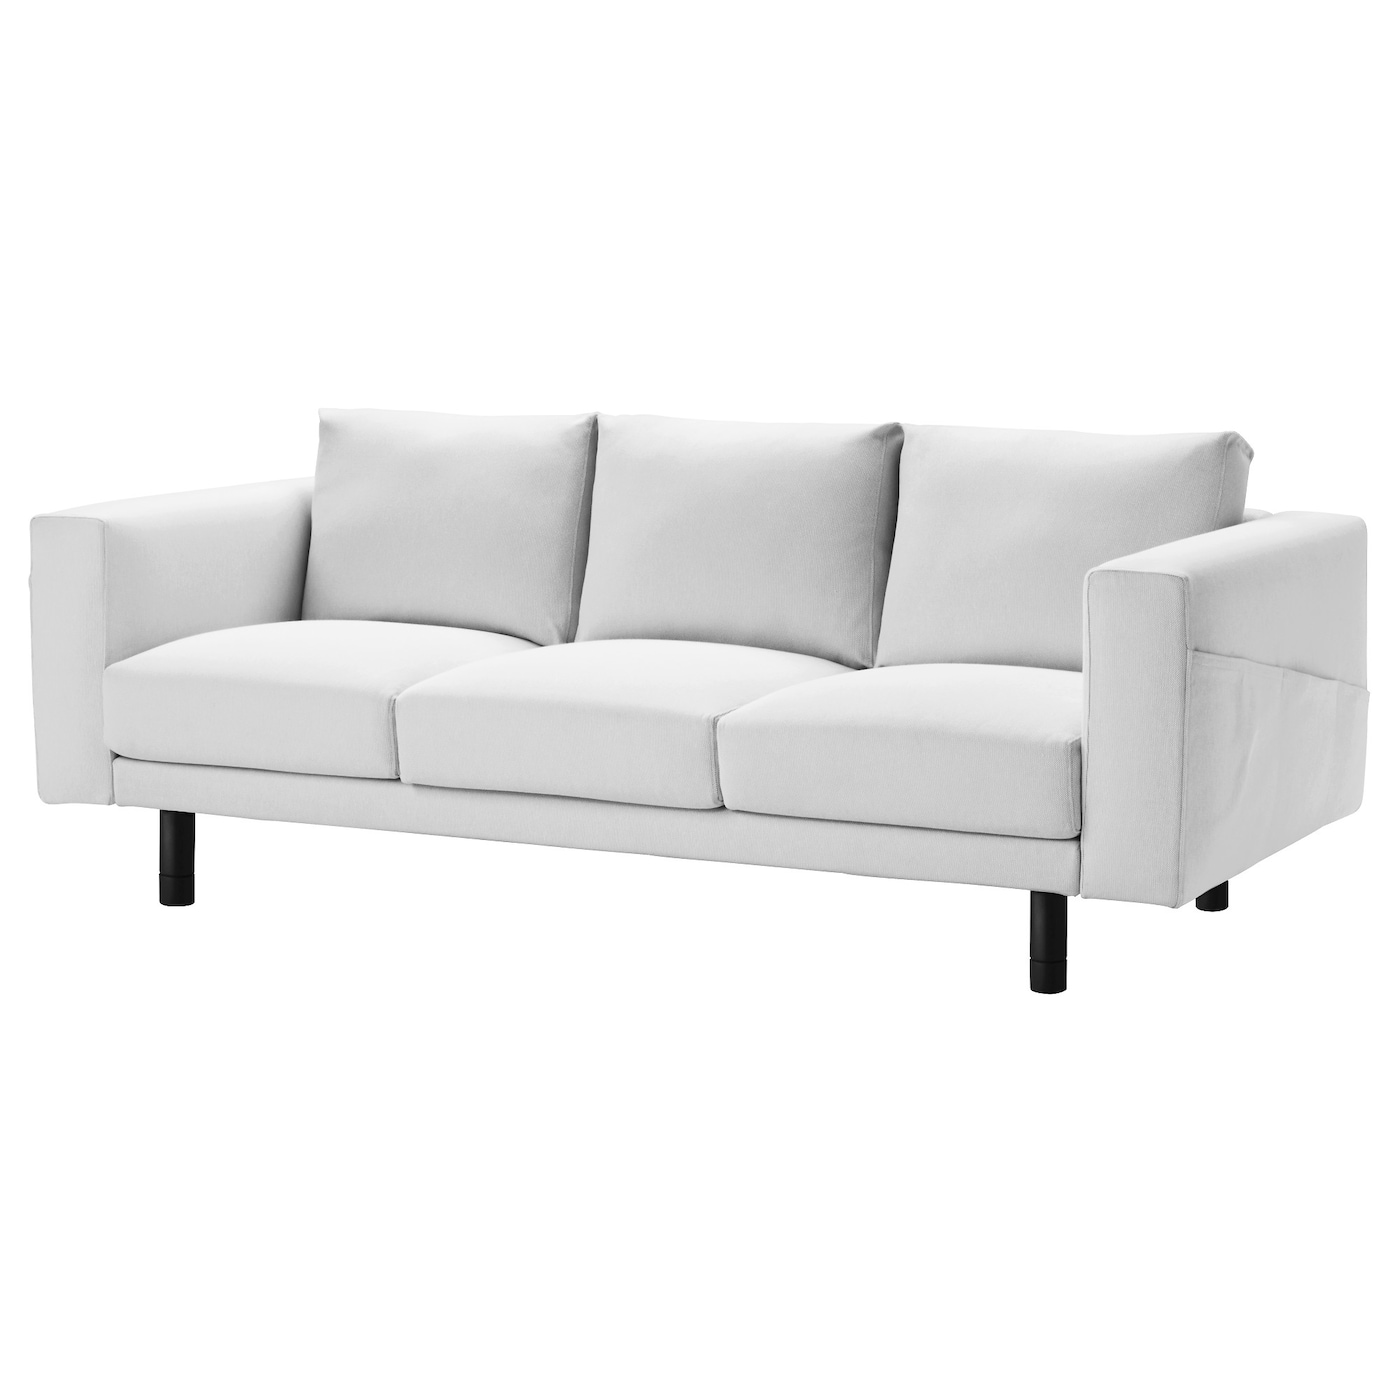 norsborg three seat sofa finnsta white grey ikea. Black Bedroom Furniture Sets. Home Design Ideas